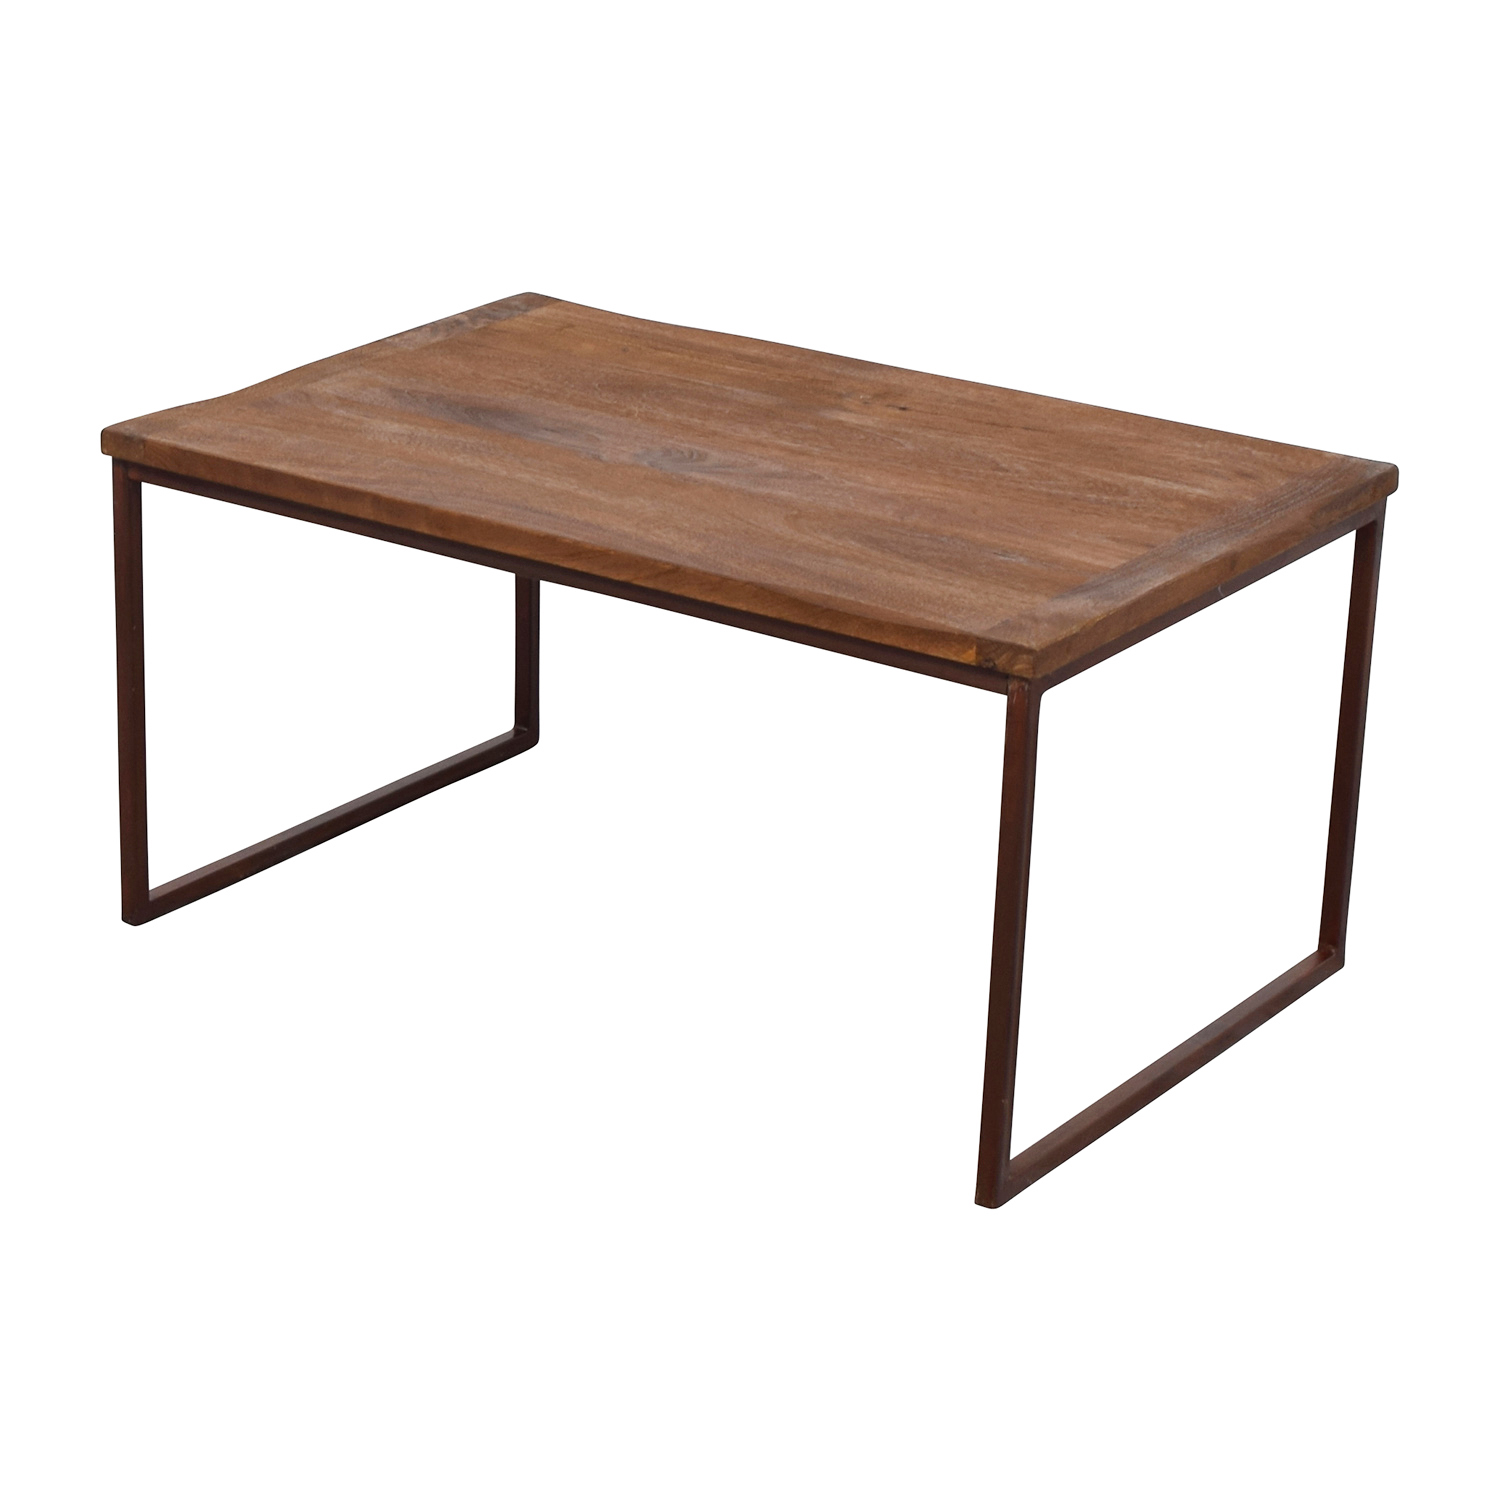 Pottery Barn Wood Table: Pottery Barn Pottery Barn Wood And Metal